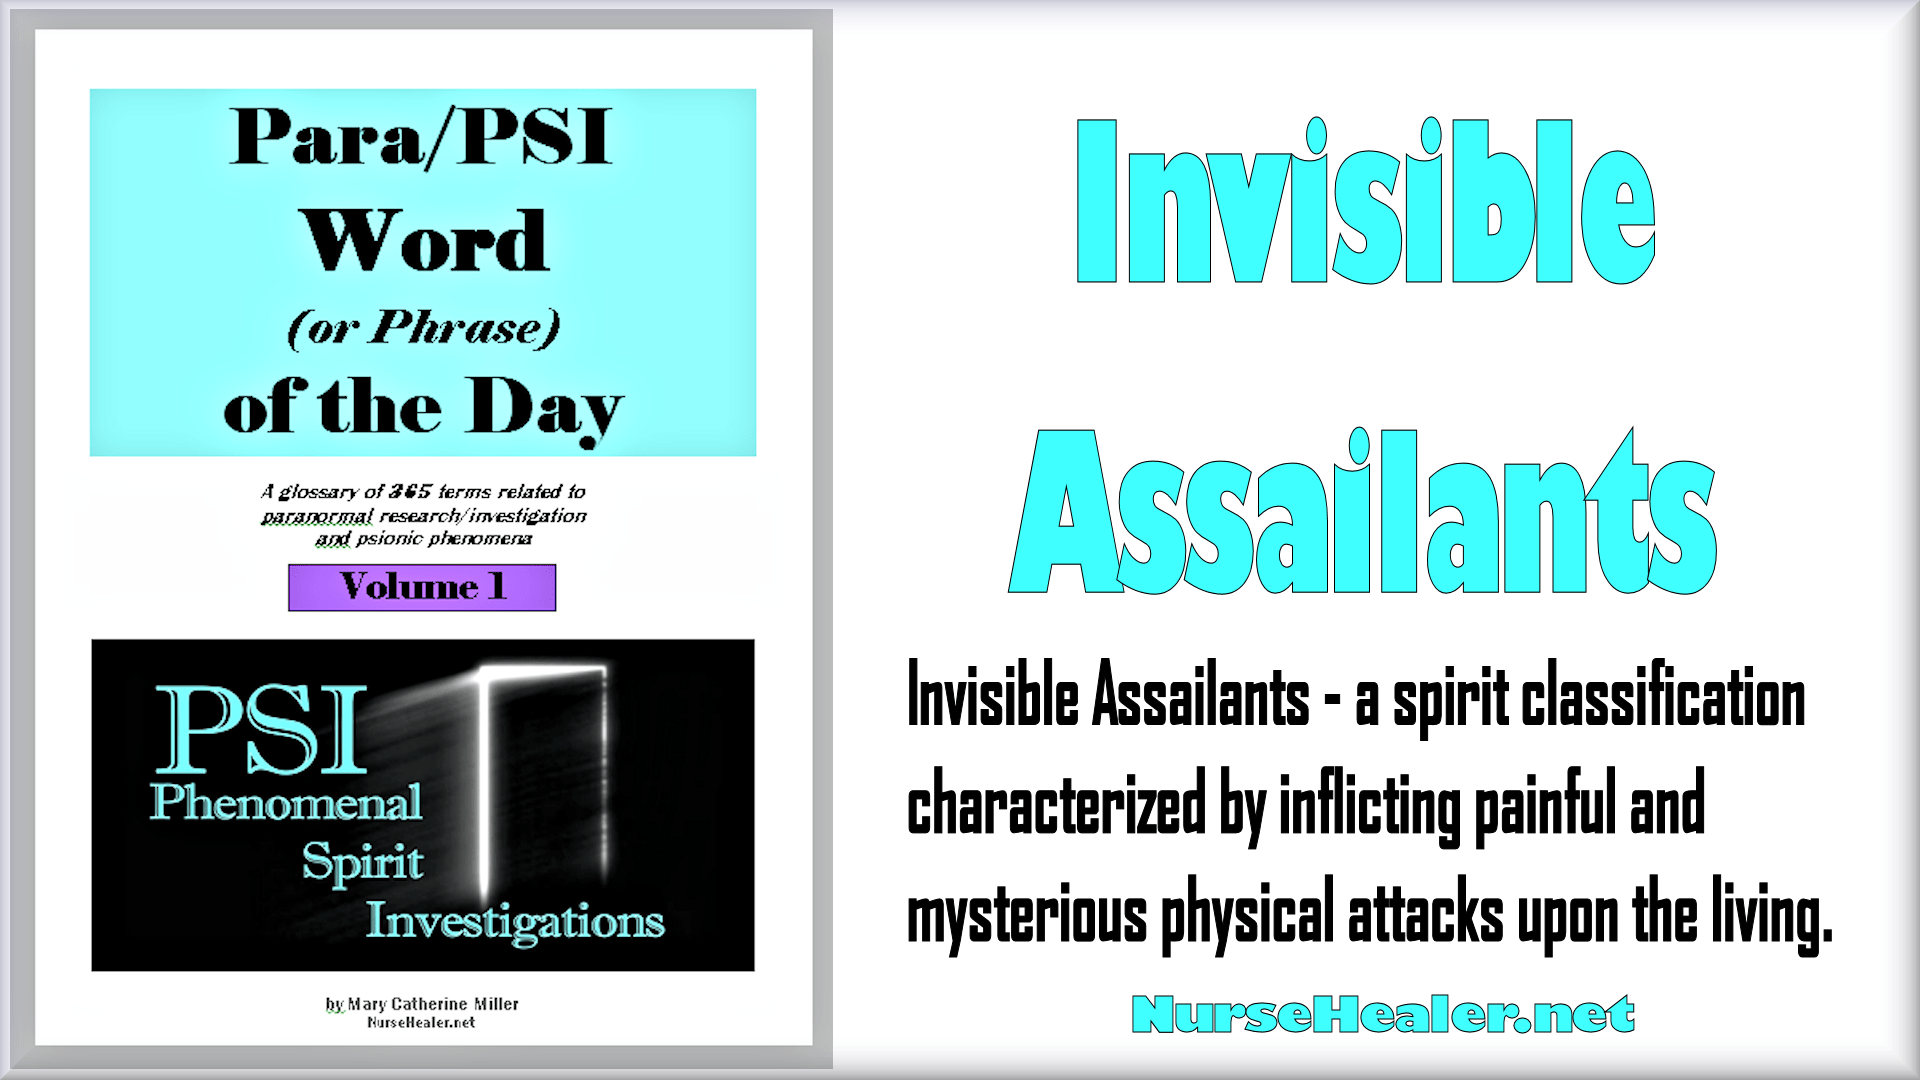 Para/PSI Word/Phrase of the Day